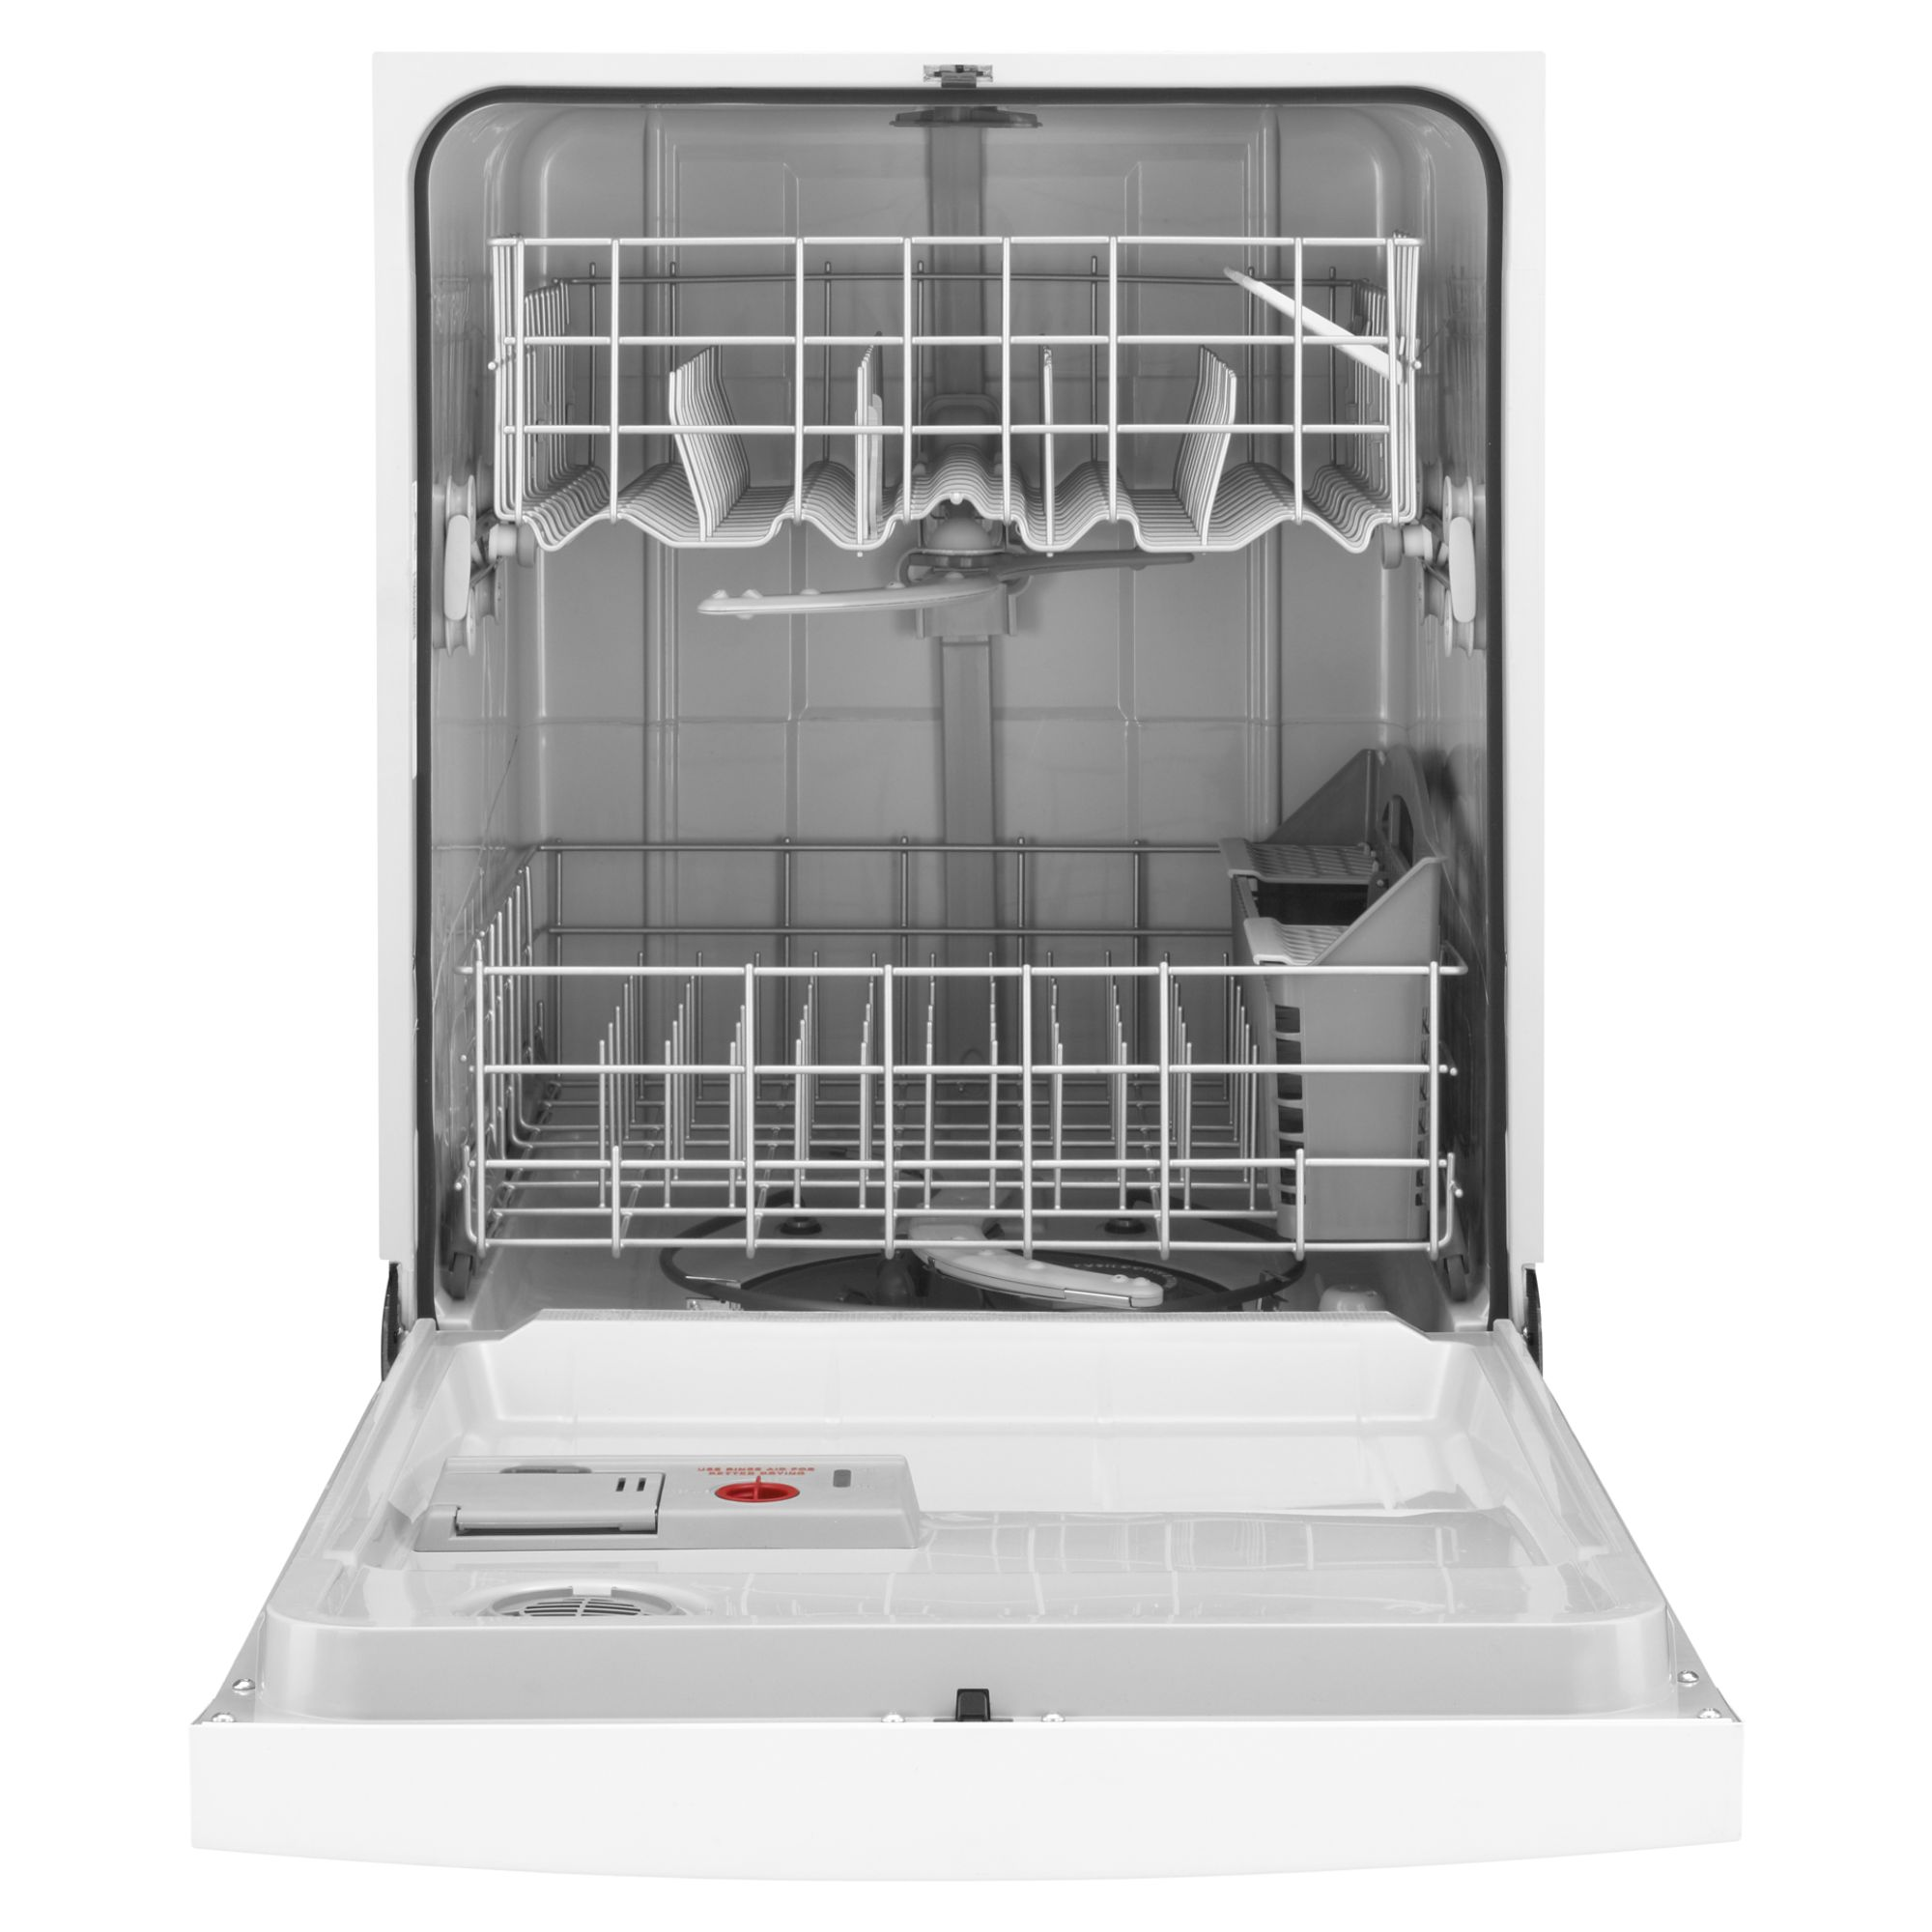 "Kenmore 24"" Built-In Dishwasher w/ Sani-Rinse™ - White"